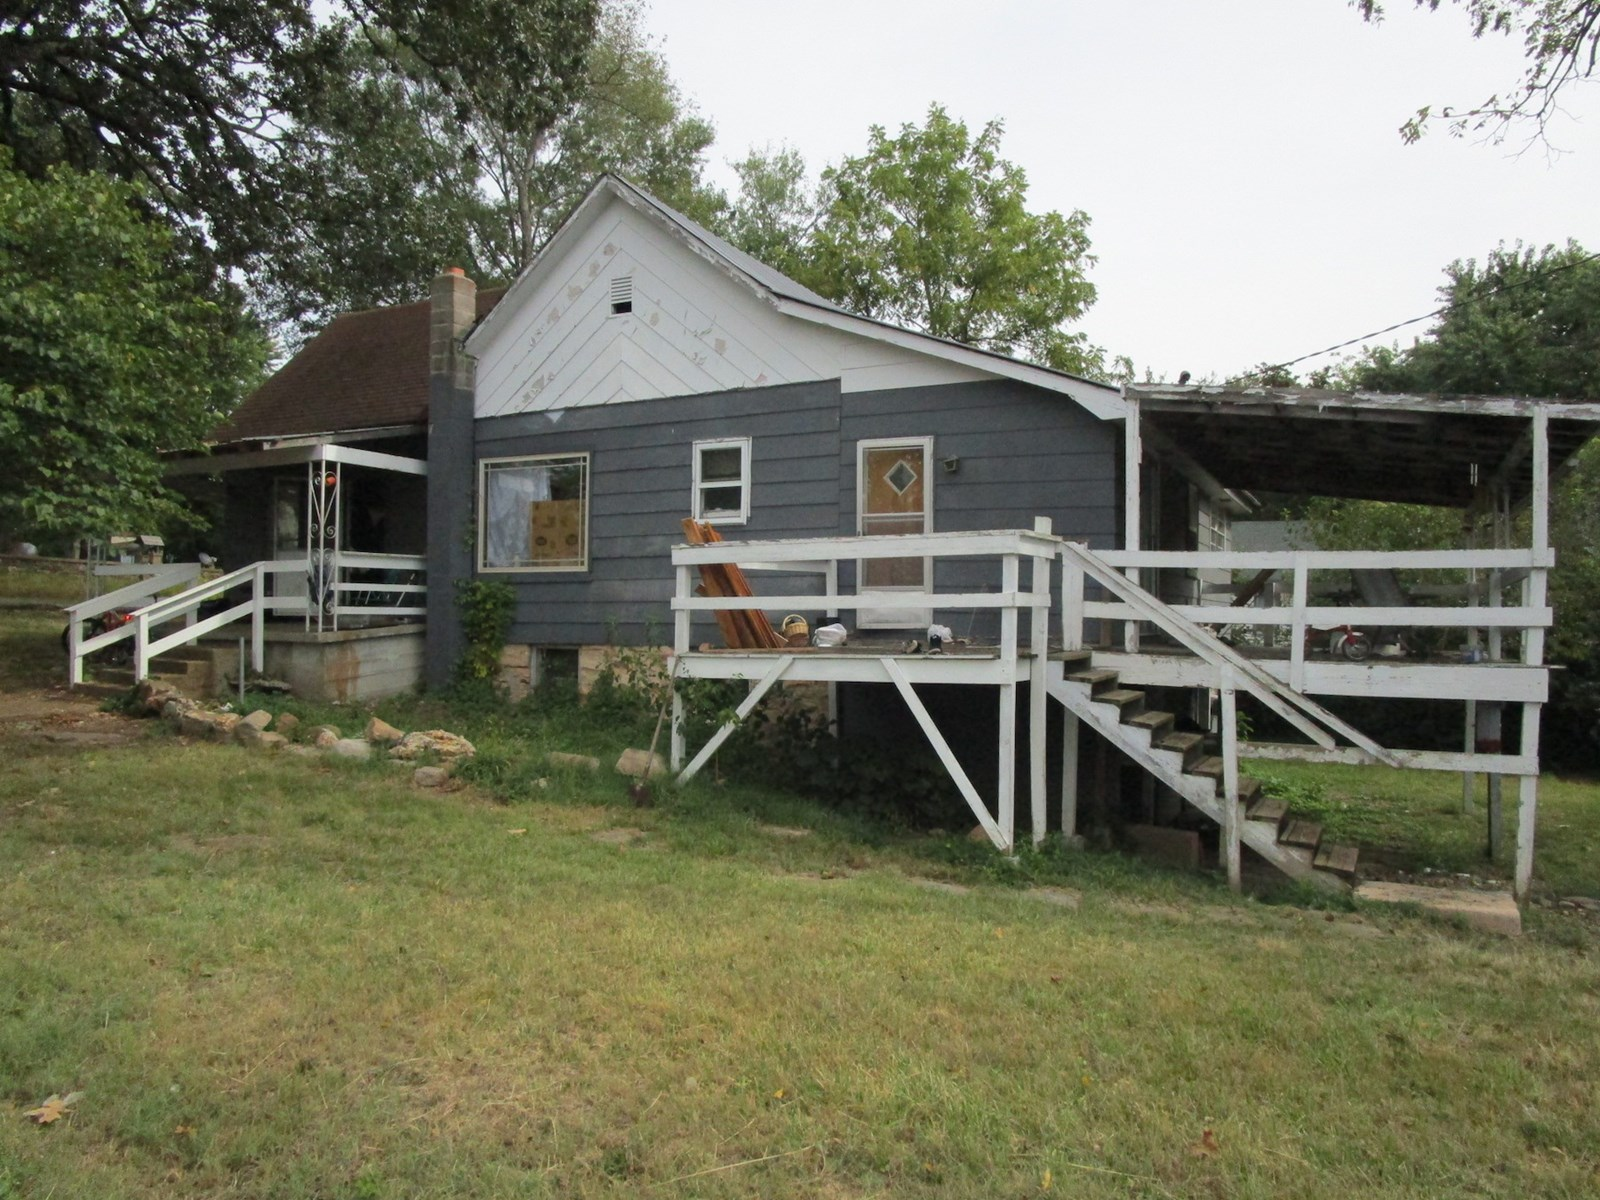 House in Town for Sale in the Southern Missouri Ozarks